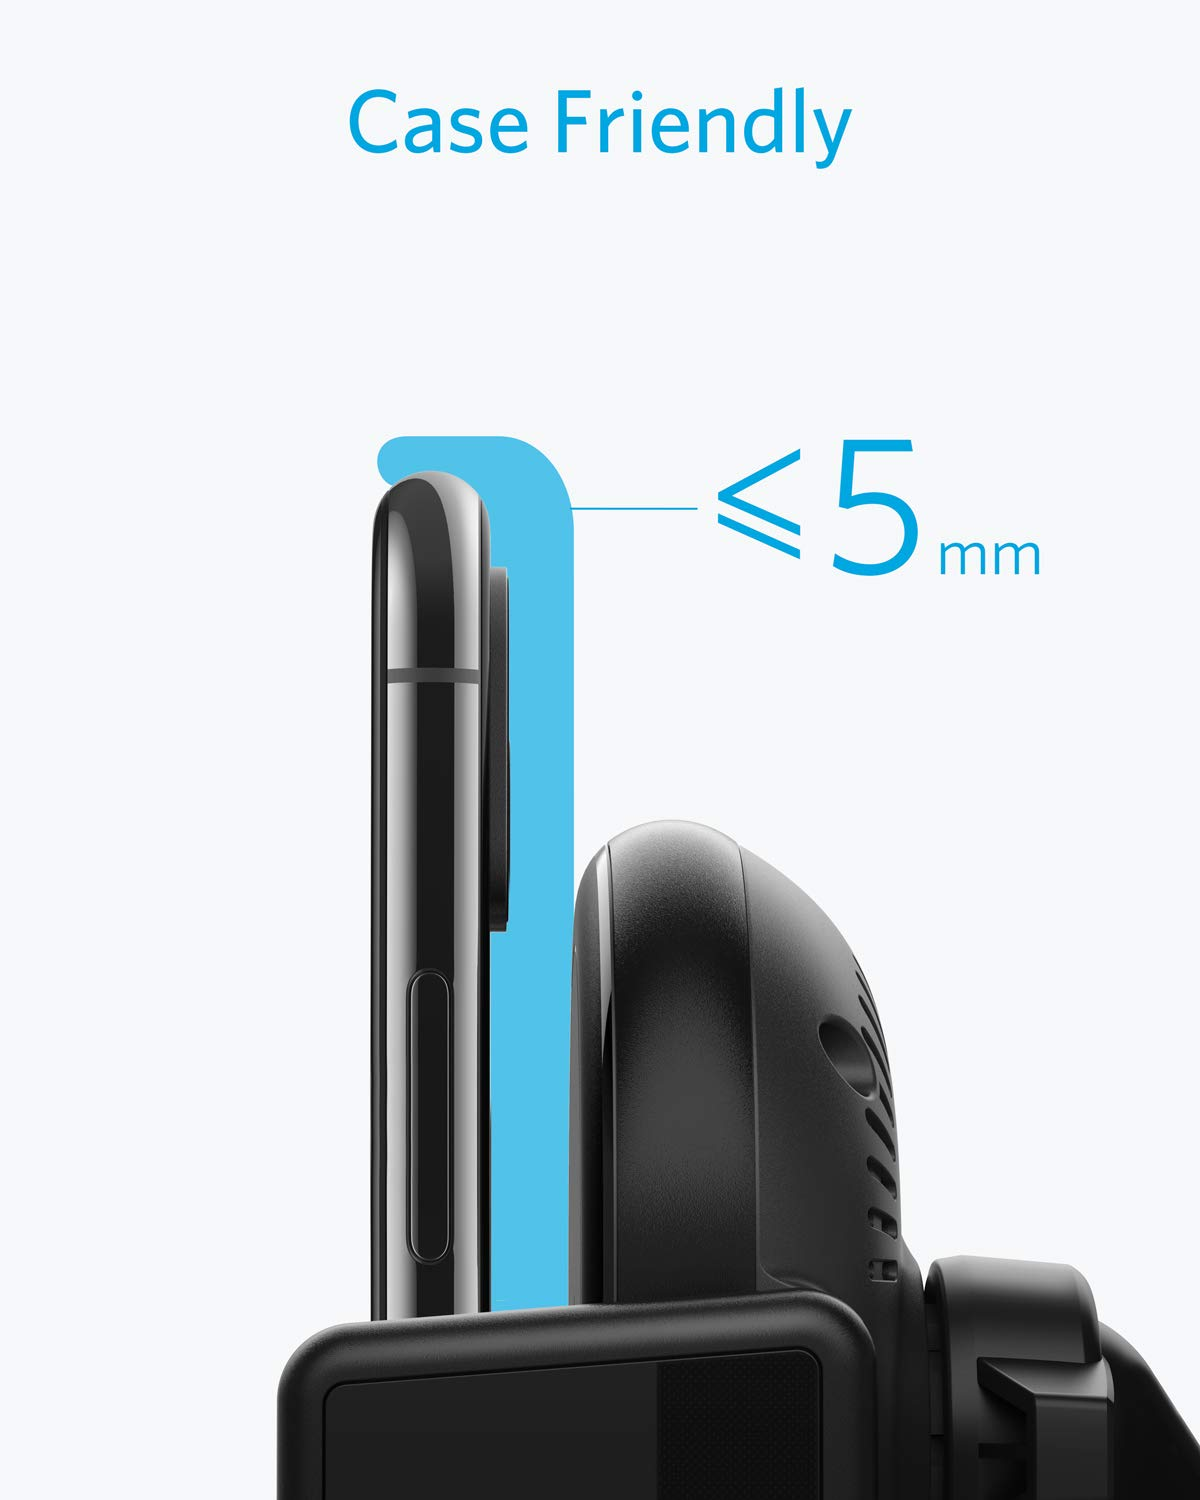 Anker PowerWave Fast Wireless Car Charger with Air Vent Phone Holder, Qi-Certified, 7.5W Fast Charging iPhone Xs Max/XR/XS/X/8/8 Plus, 10W for Galaxy S9/S9+/S8/S8+ (Quick Charge Car Charger Included) by Anker (Image #7)